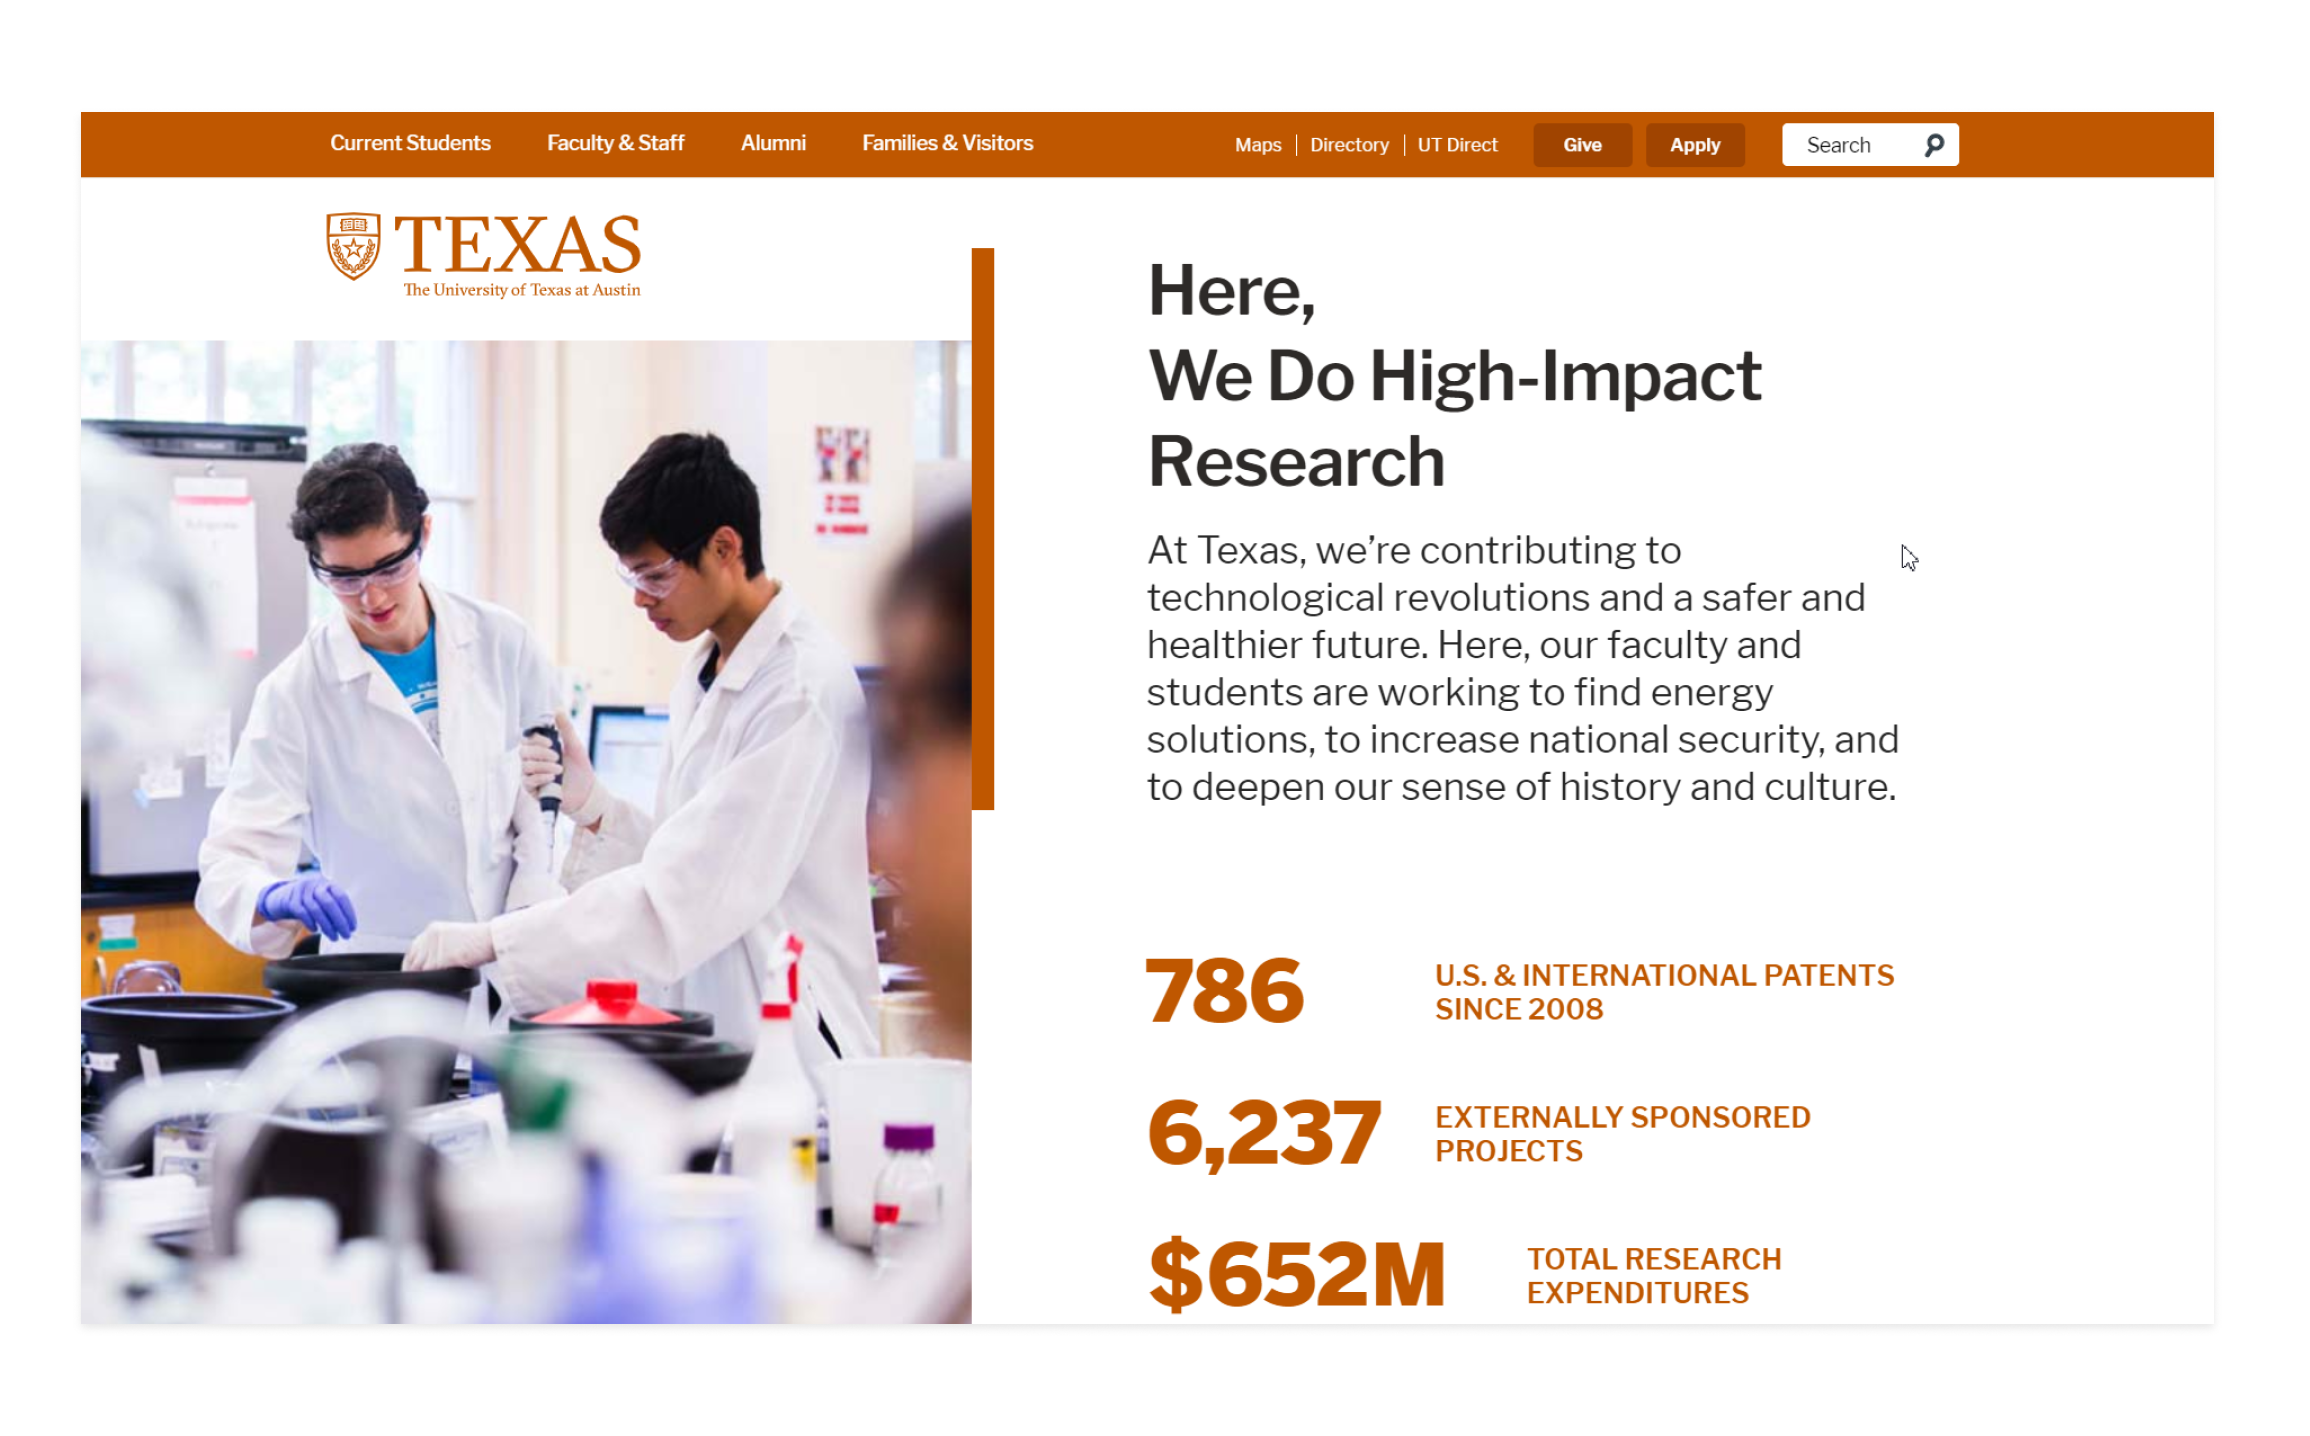 The University of Texas at Austin website